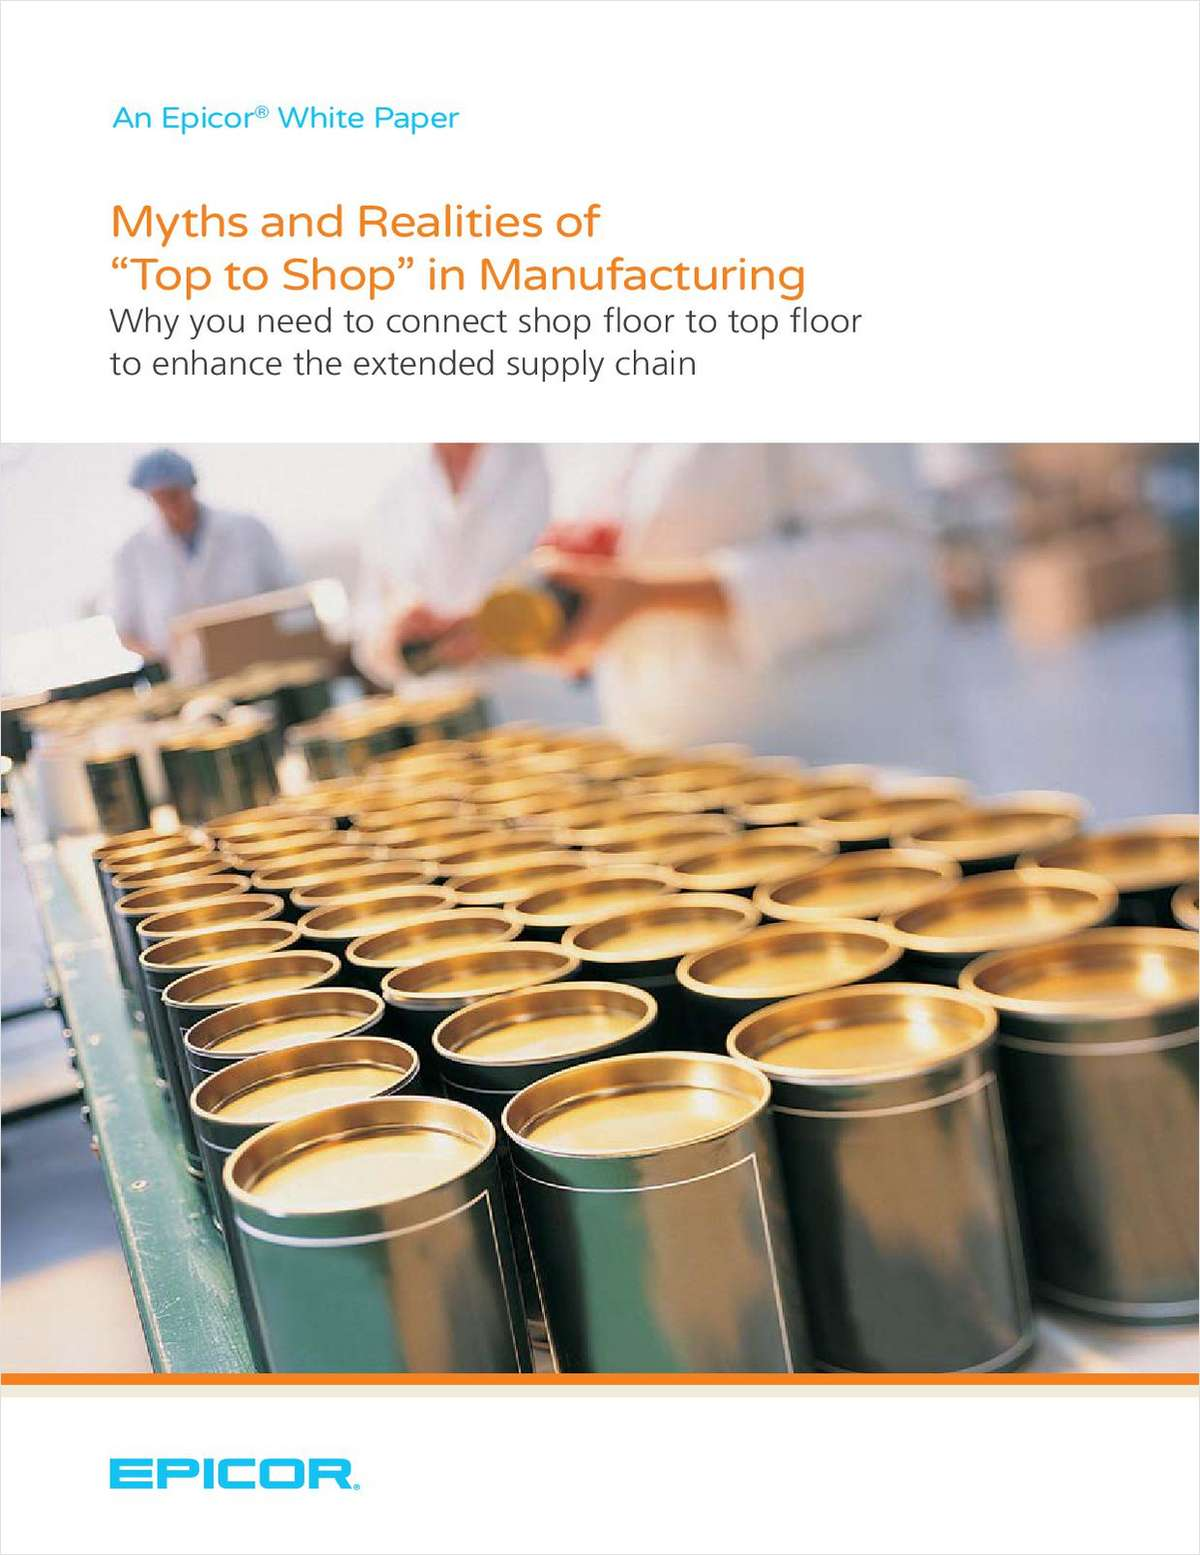 Myths and Realities of 'Top to Shop' in Manufacturing